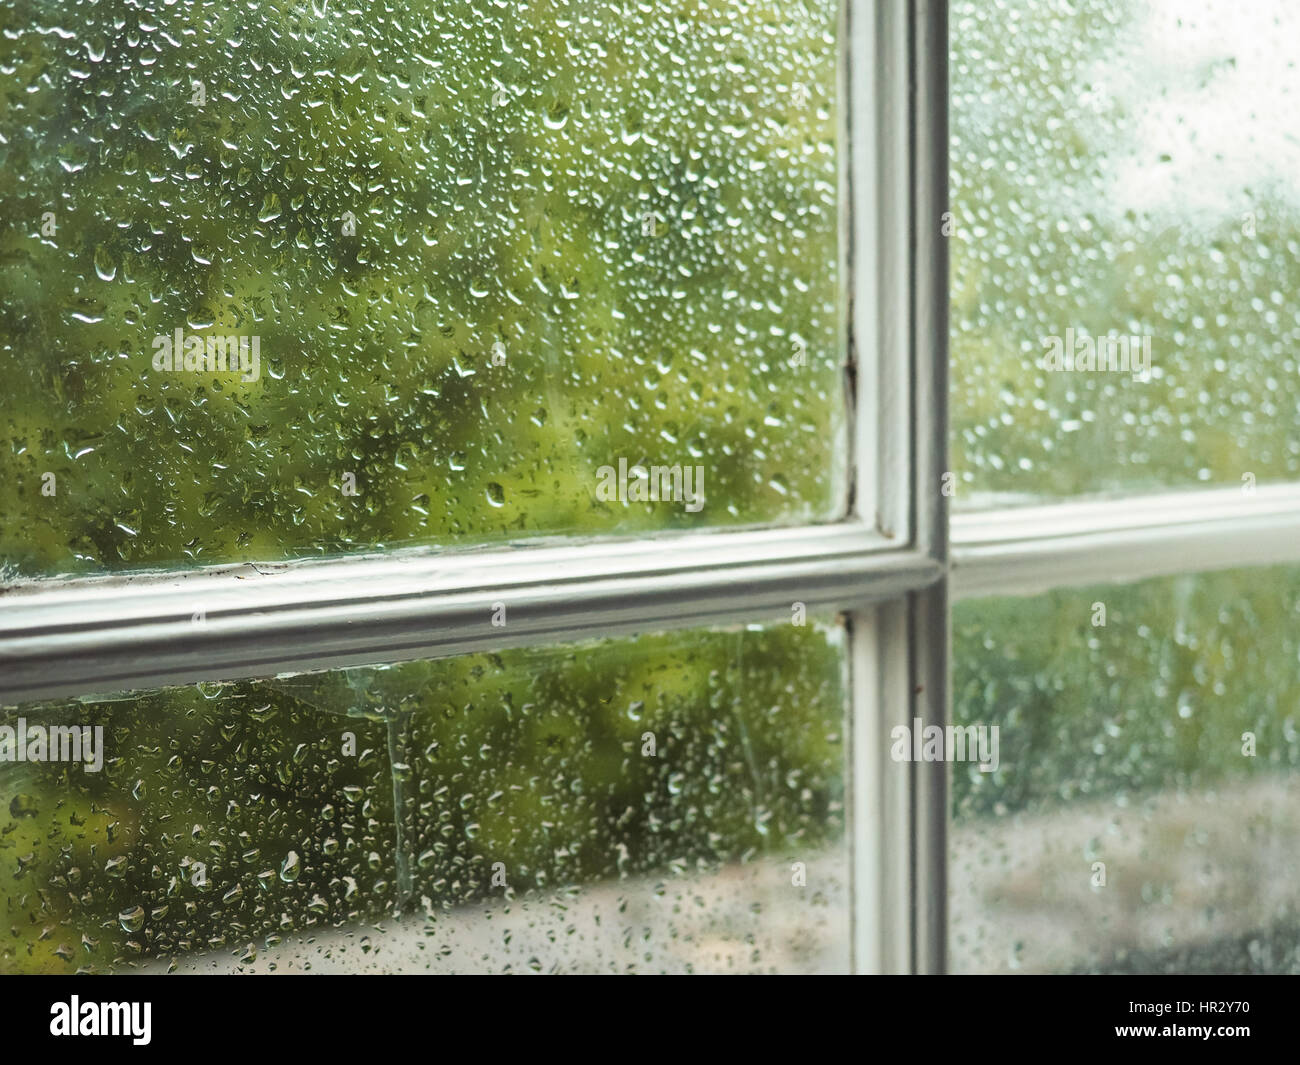 Wet window pane with rain water droplets and greenery background - Stock Image